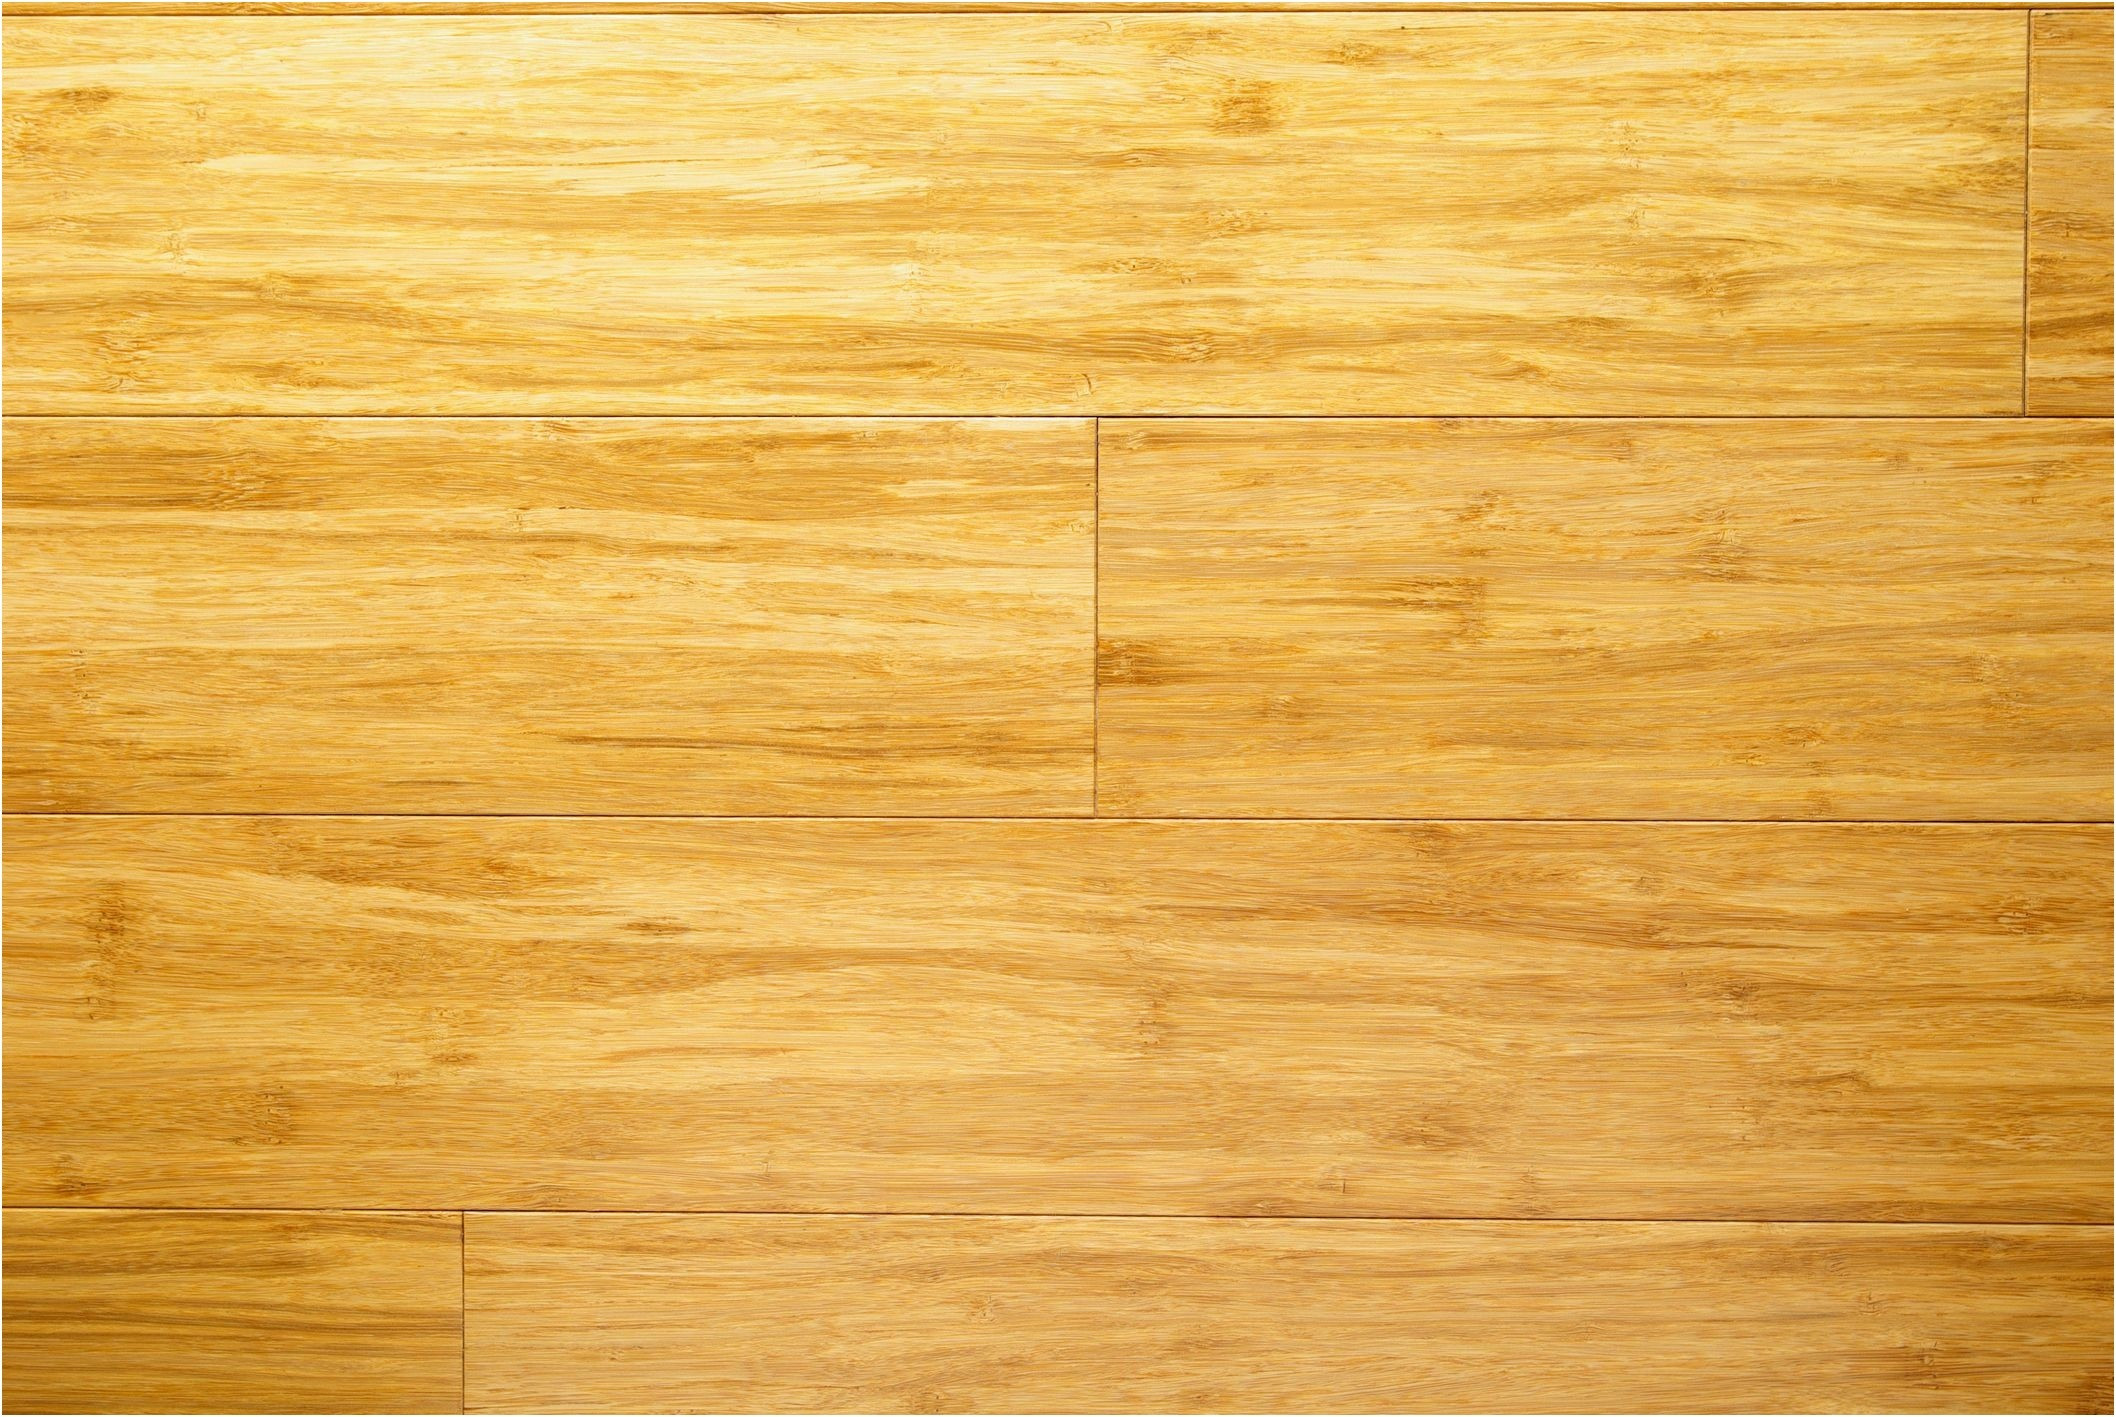 hand scraped hardwood flooring pros and cons of laminate vs bamboo new shaw industries natural impact ii laminate for laminate vs bamboo new how do you lay laminate flooring elegant 0d grace place barnegat nj